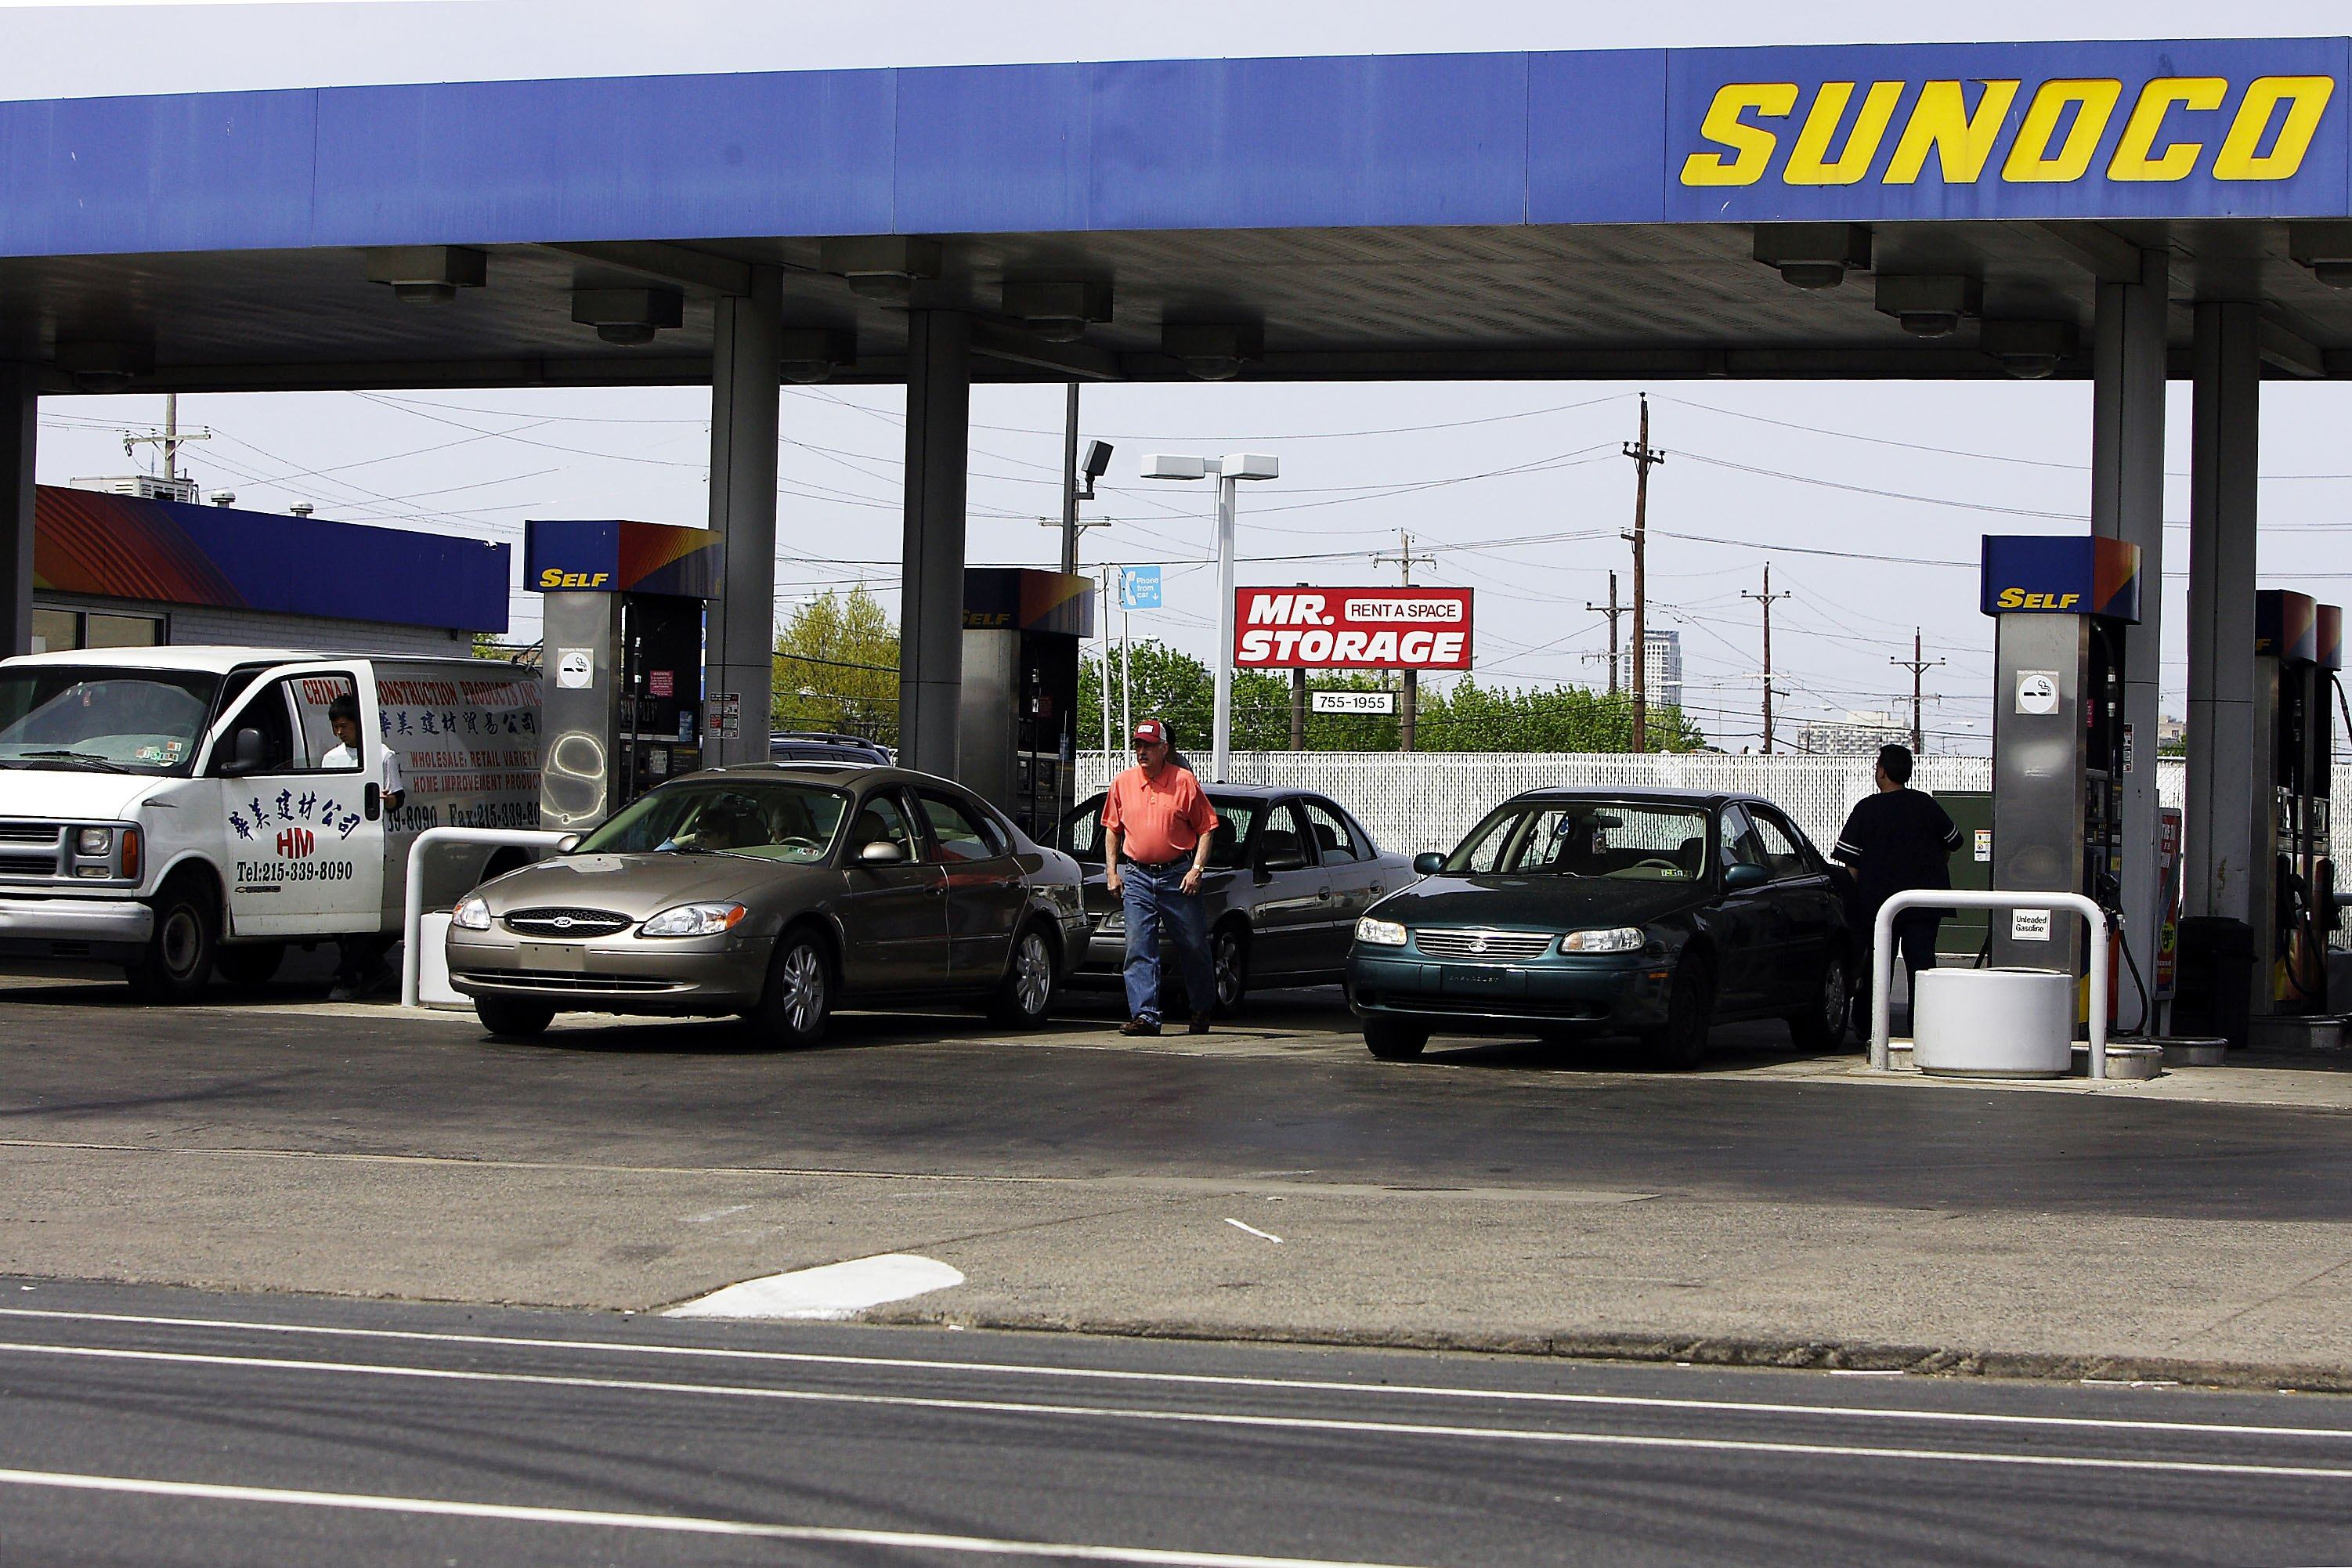 PHILADELPHIA - APRIL 21: Consumers fill up their tanks at a Sunoco gas station on April 21, 2006 in Philadelphia, Pennsylvania.